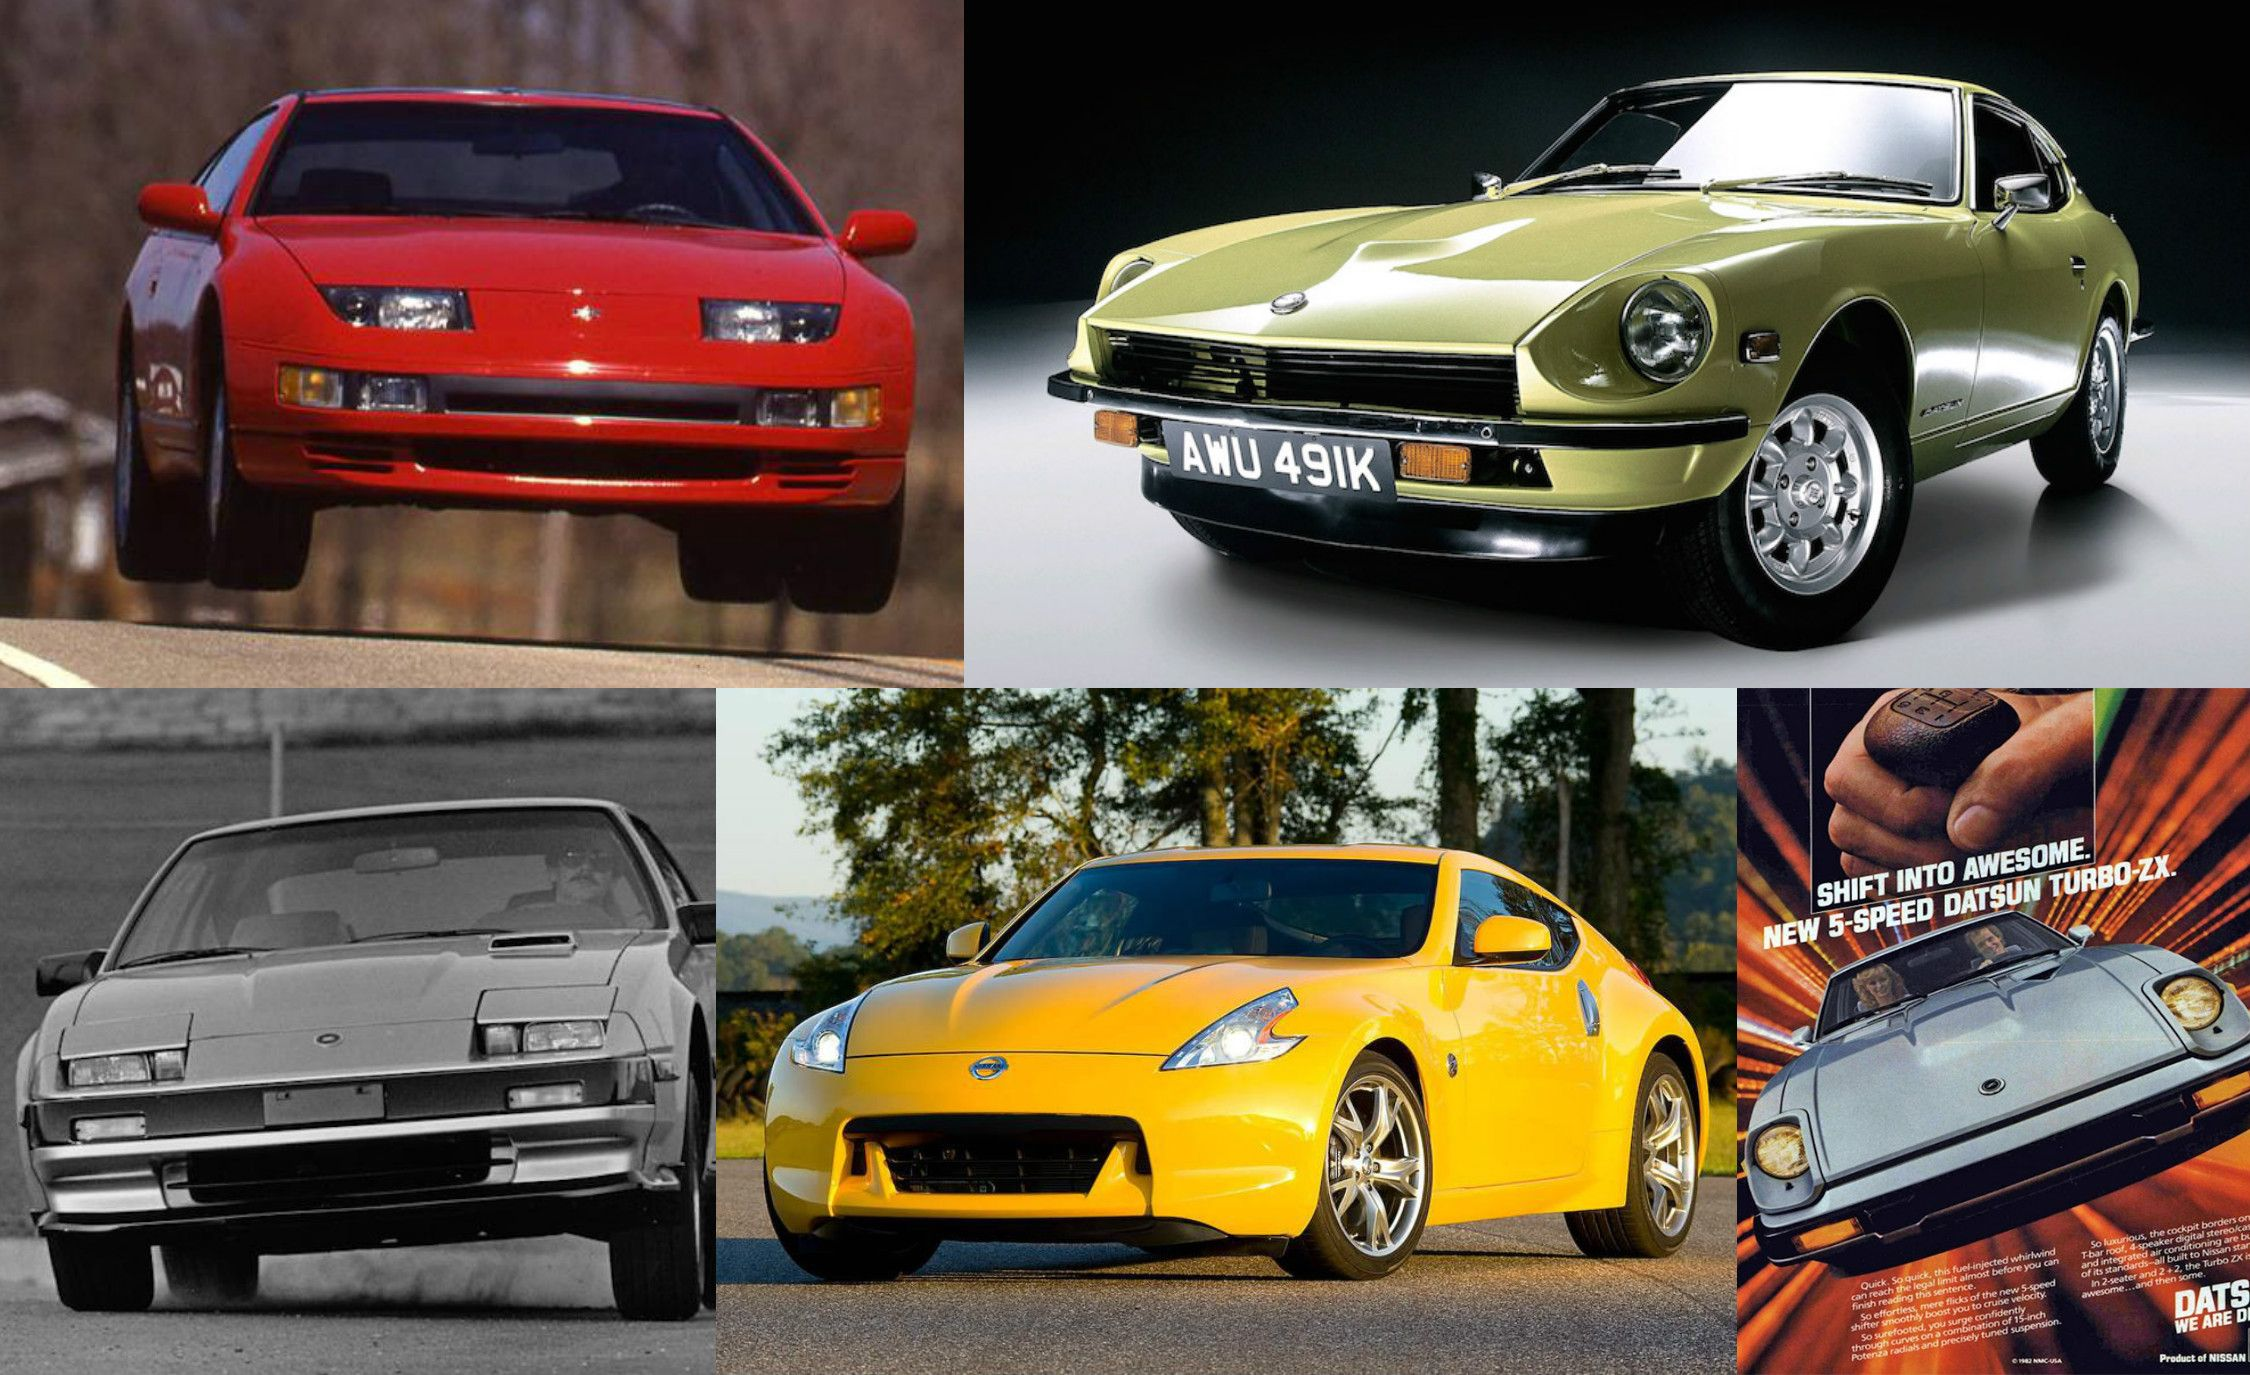 12 Awesome Foreign Cars That Soon Will Be Eligible For U.S. Import |  Flipbook | Car And Driver